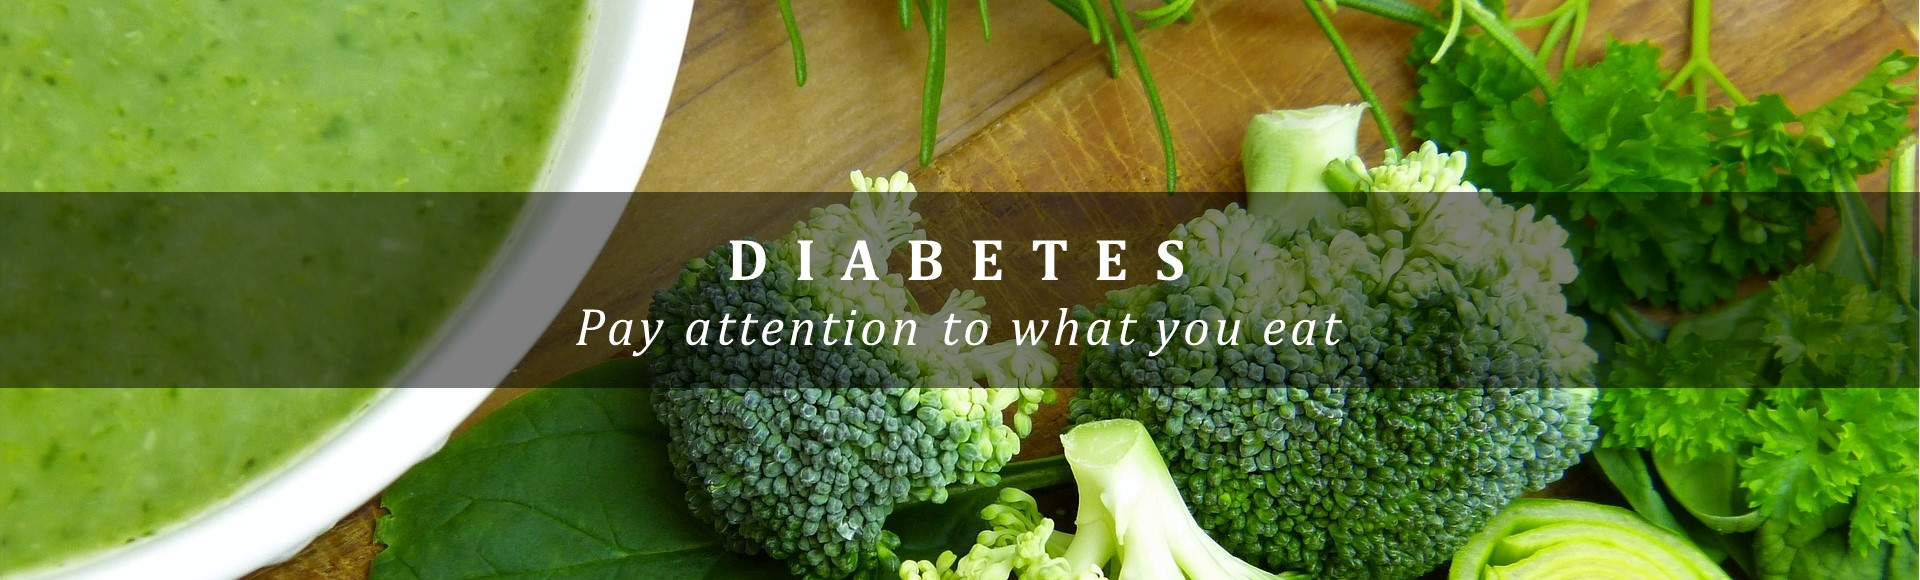 diabetes watch what you eat